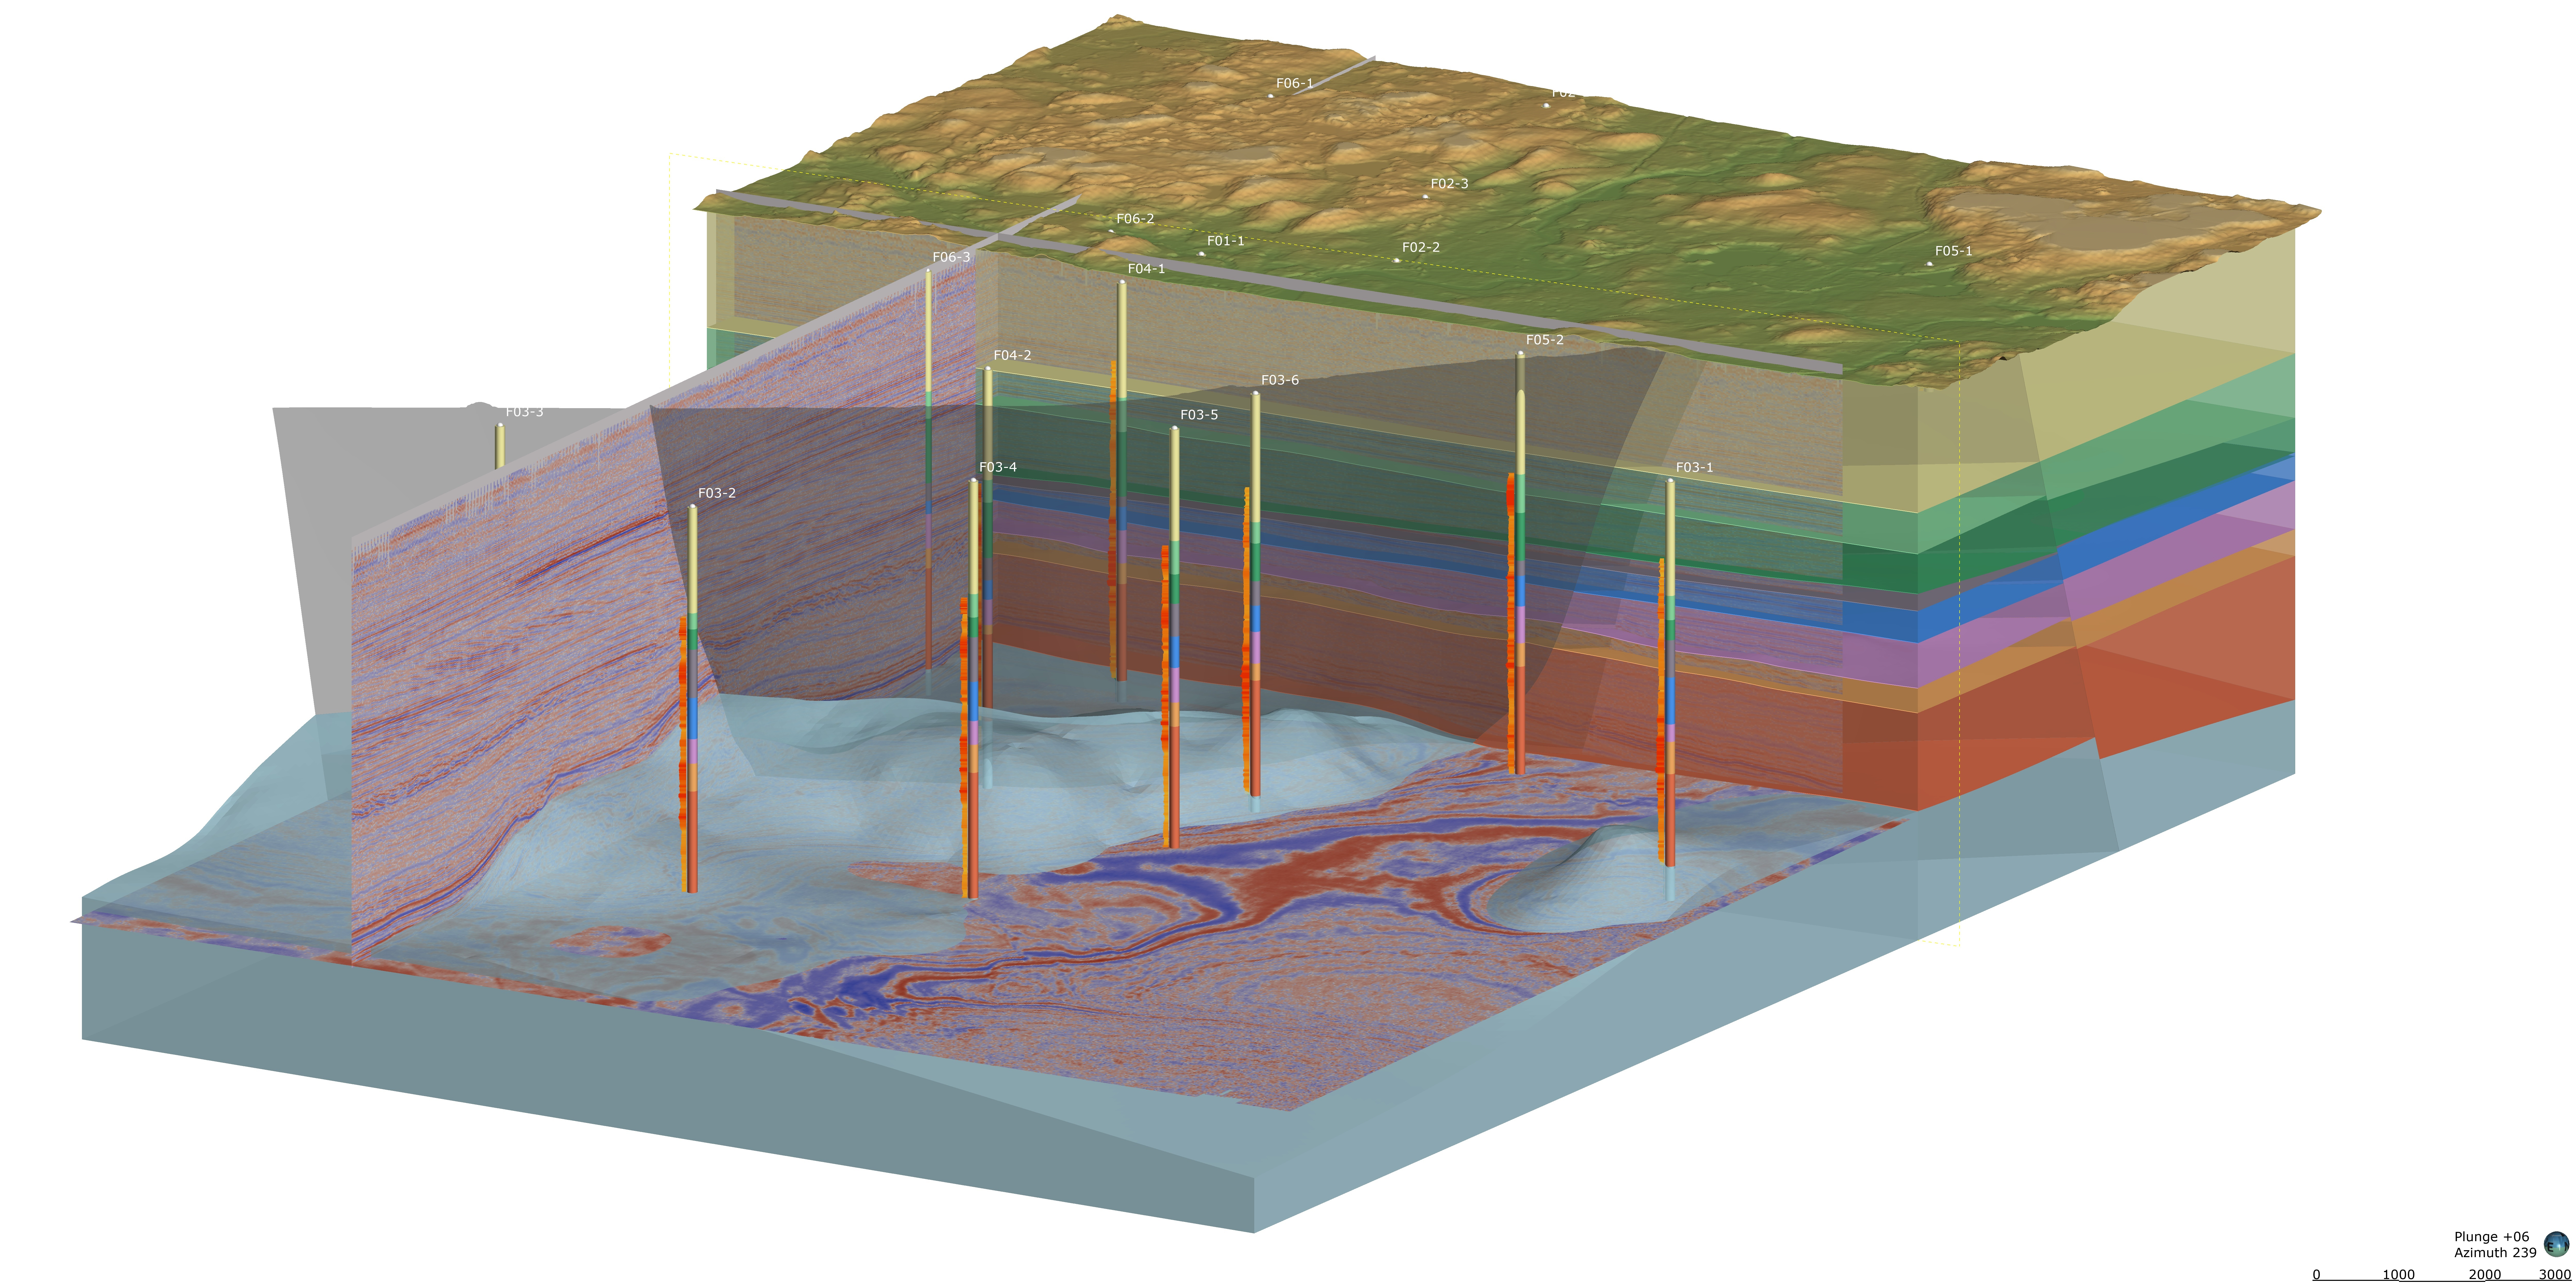 Visualise seismic data in 3D with Leapfrog Geothermal 2021.1